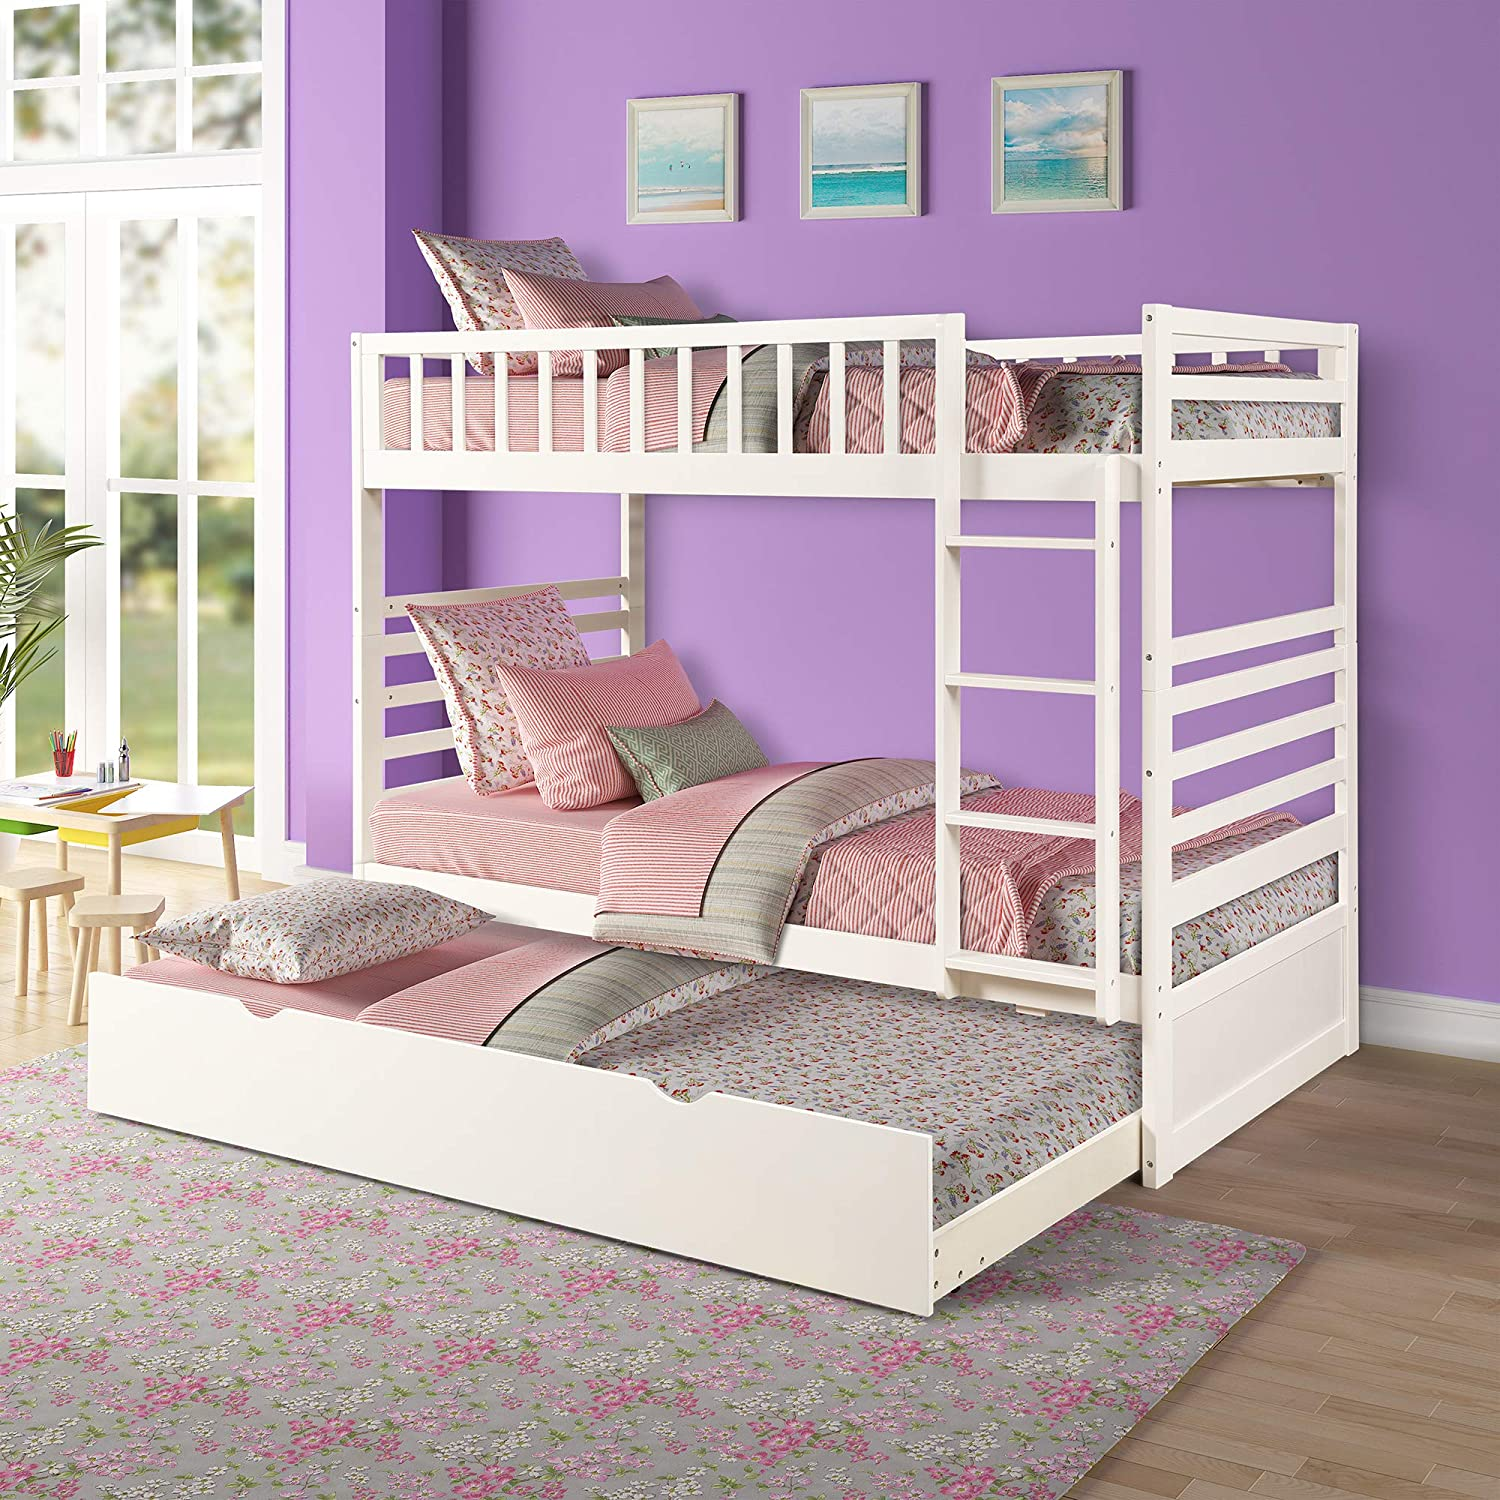 Bunk Beds for Kids, Over Twin Bed with Trundle, Wooden Twin Bed with Drawer and Safety Rail Ladder, Teens Bedroom Bed, Guest Room Furniture White